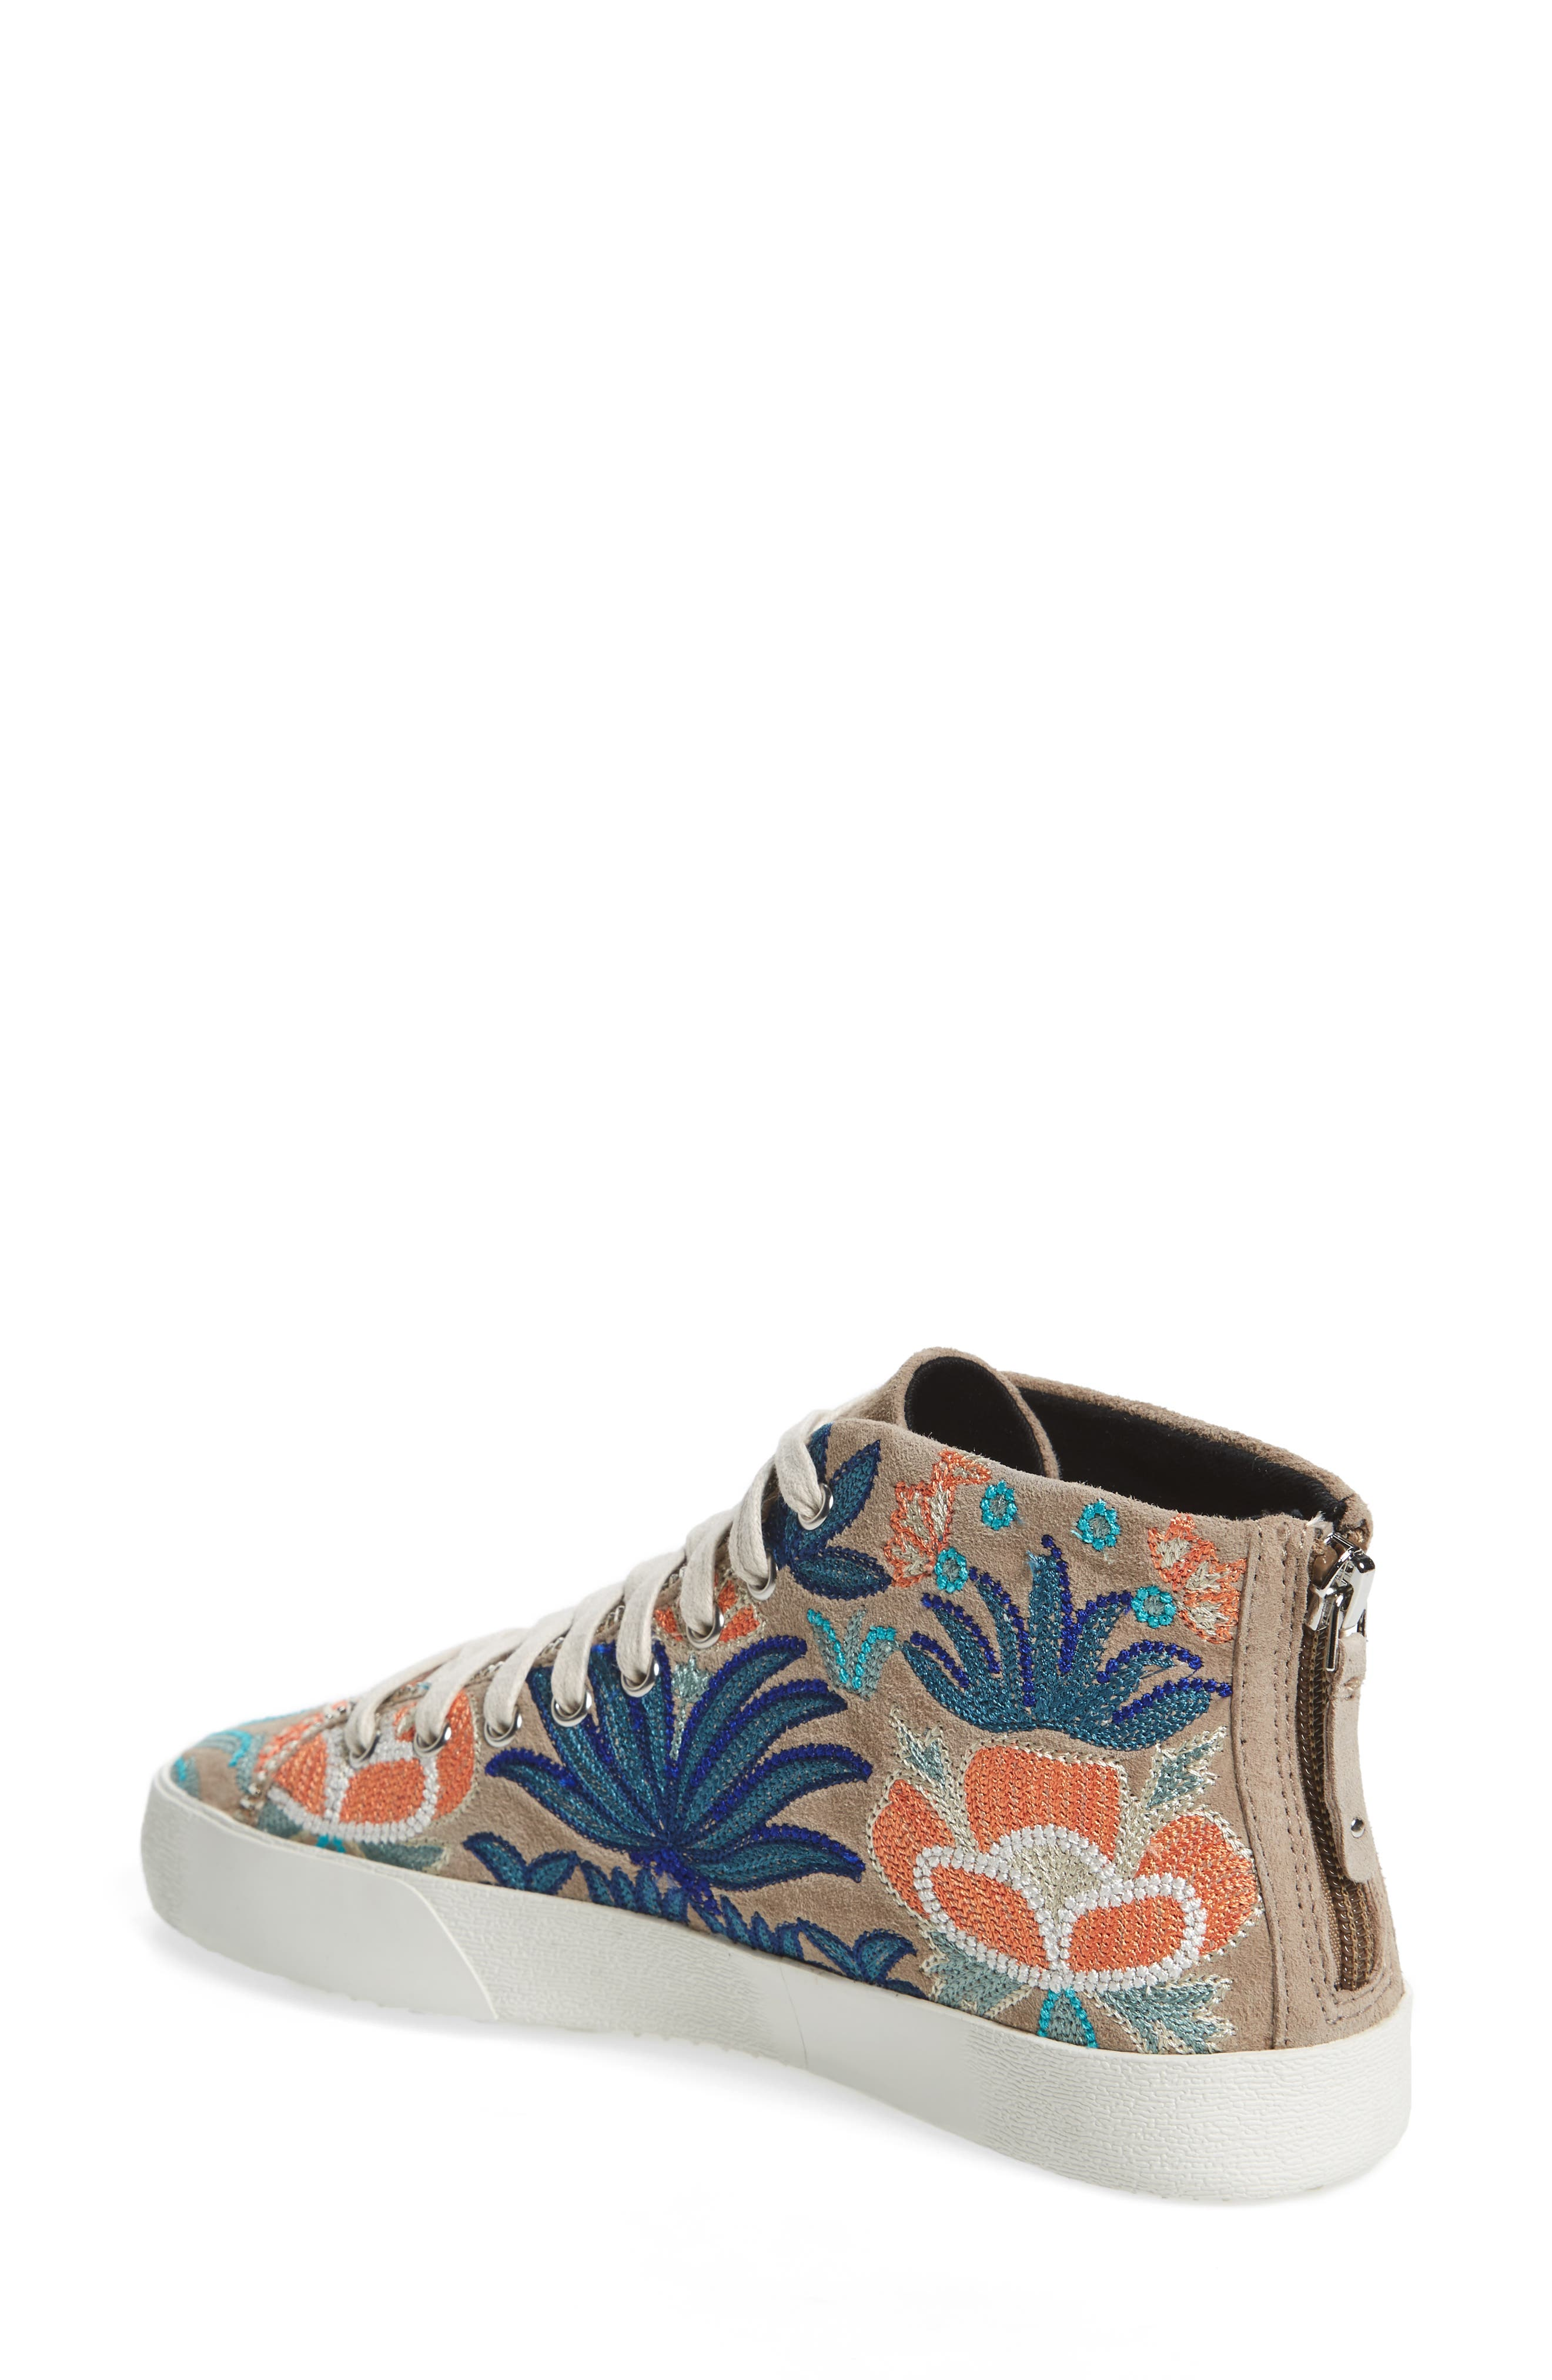 Zaina Embroidered Sneaker,                             Alternate thumbnail 2, color,                             Sand